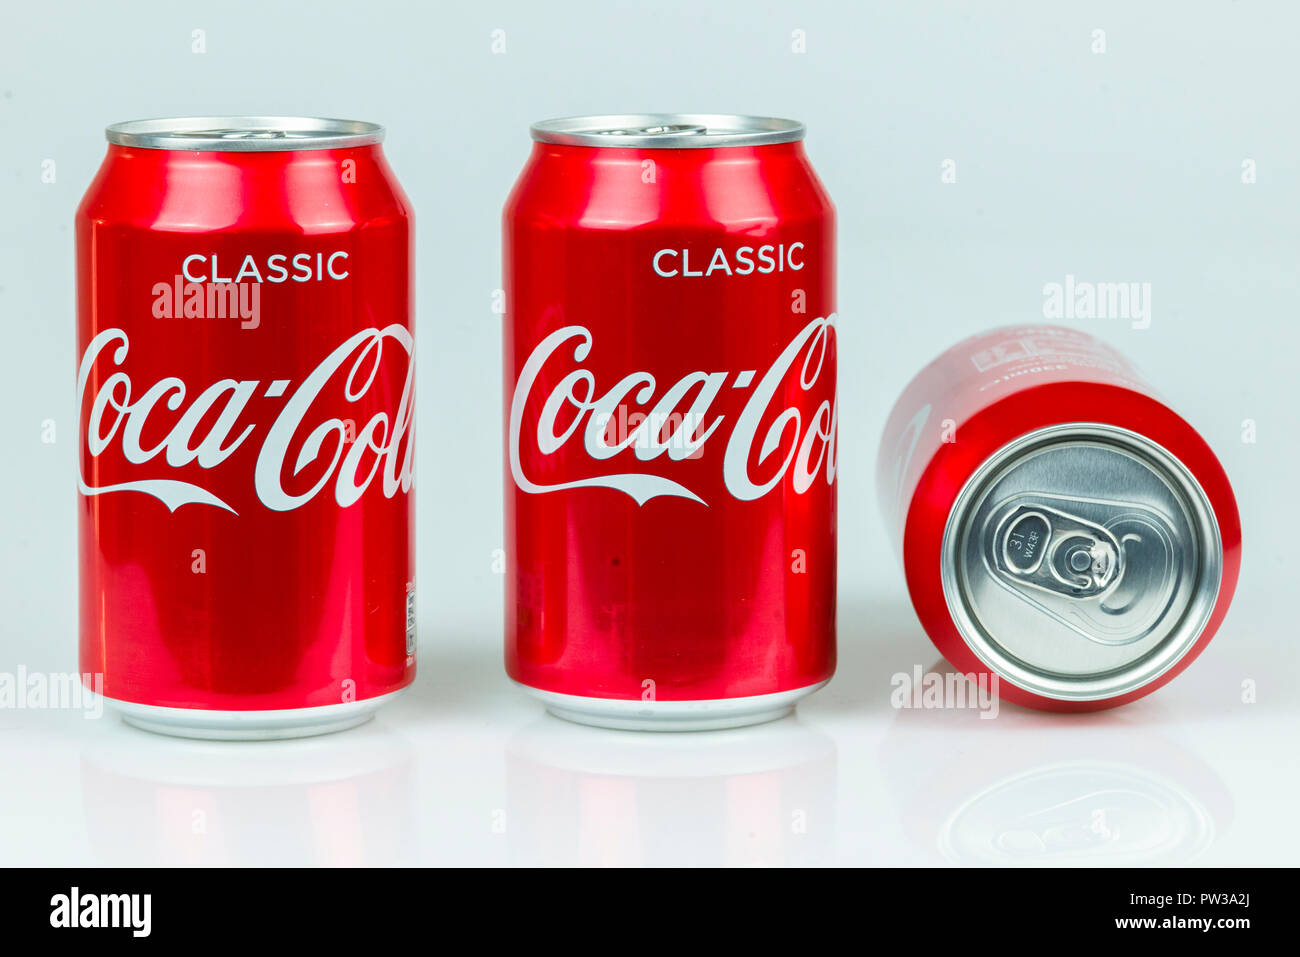 Classic Coke cans by Coca Cola isolated on white background - Stock Image